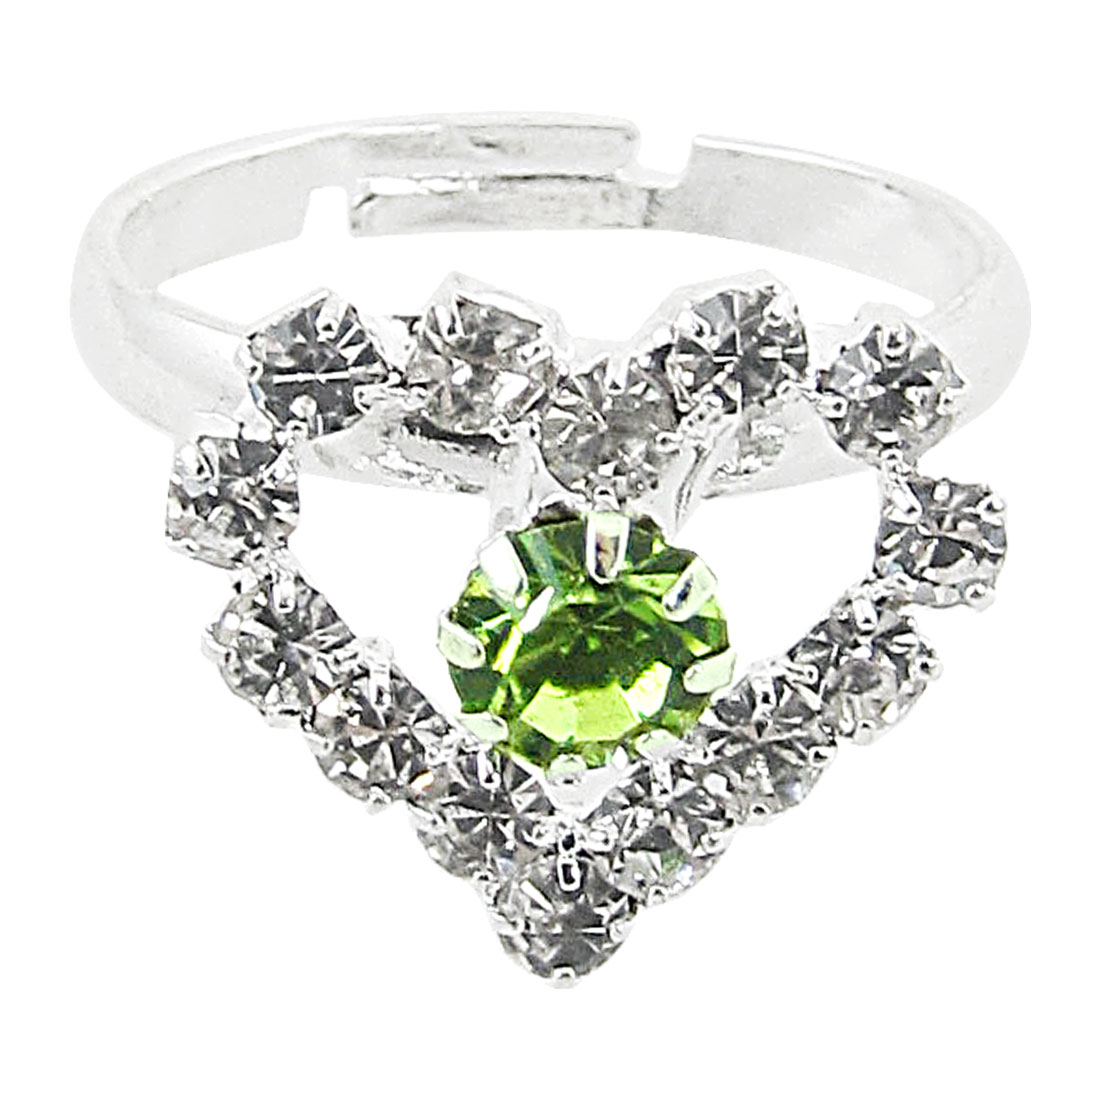 US Size 7 1/4 Faux Rhinestone Heart Decor Silver Tone Metal Finger Ring for Women